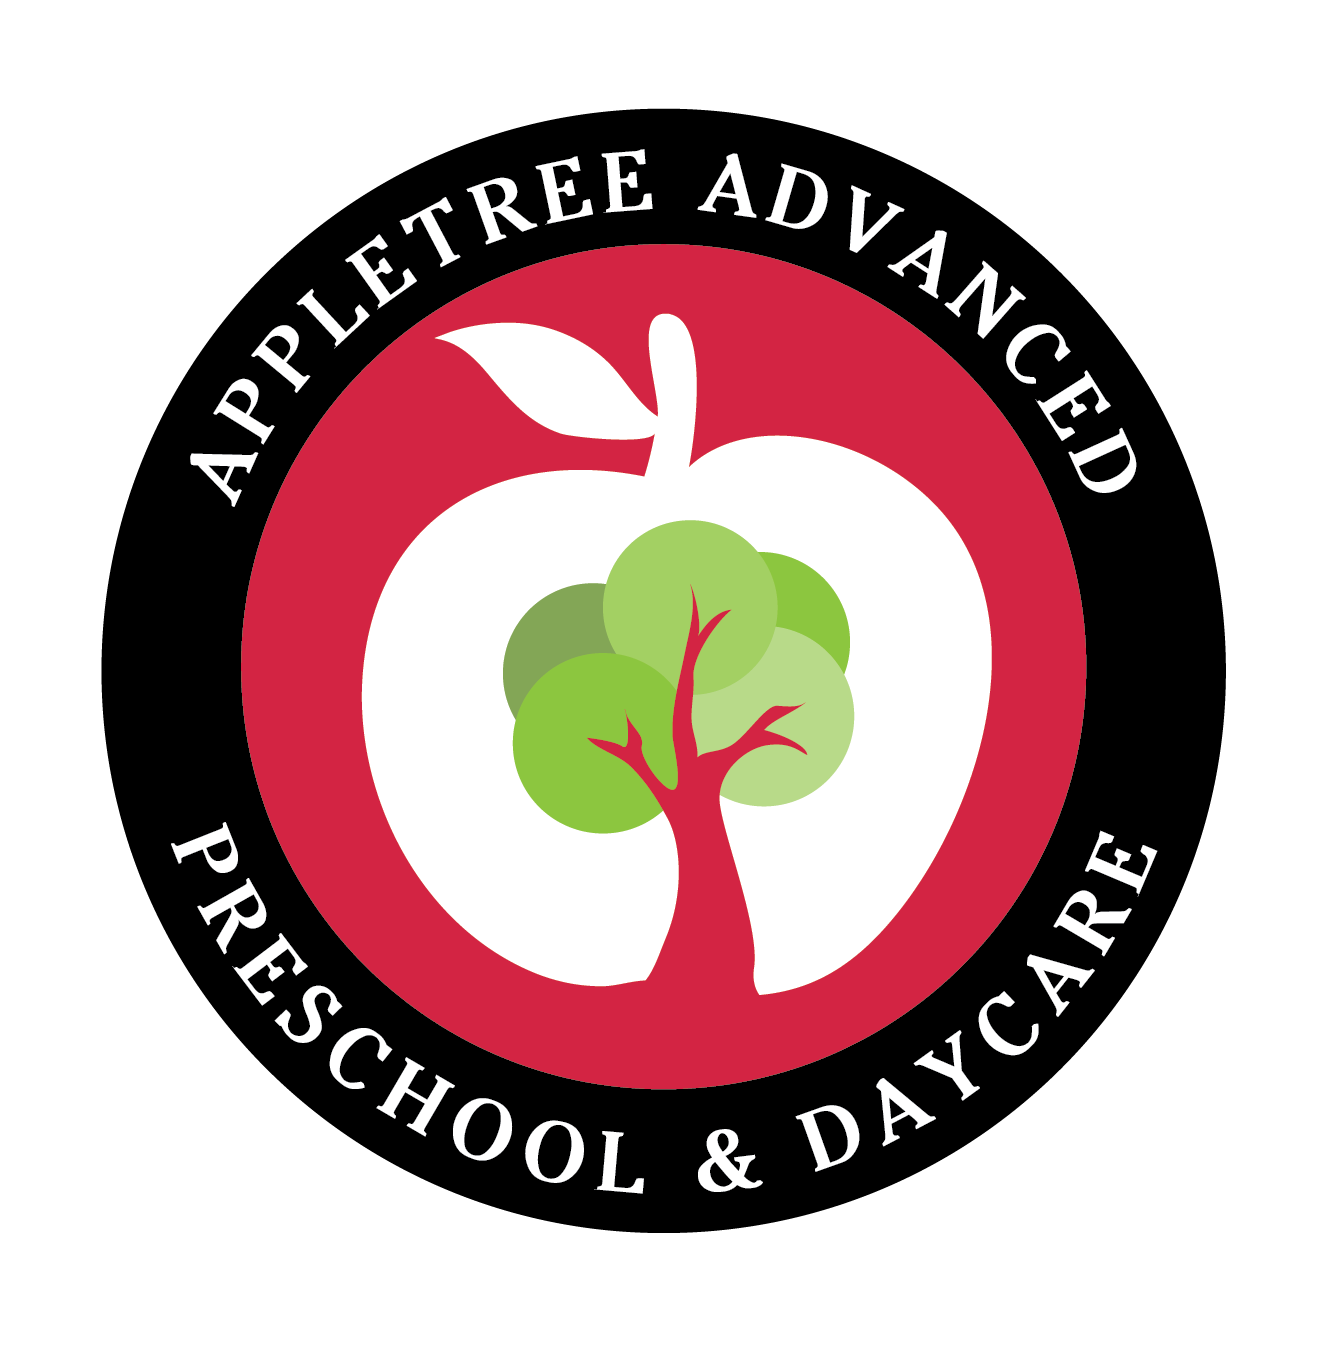 Appletree Advanced Preschool & Day Care